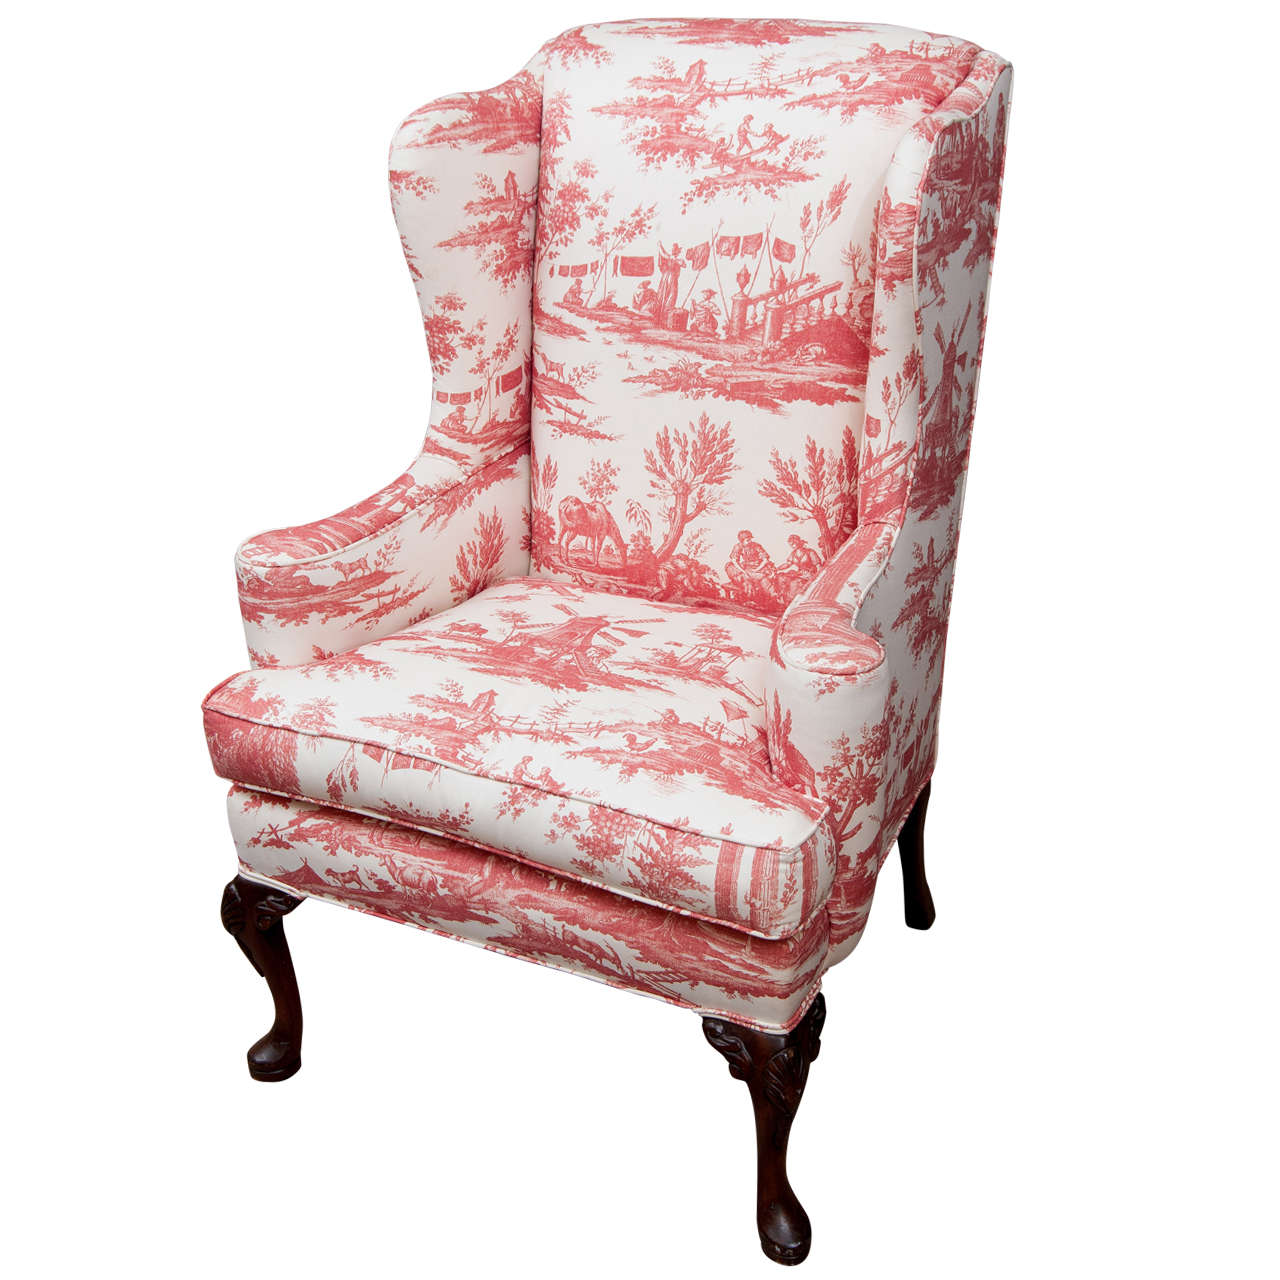 Slipcovers For Queen Anne Chairs jpg